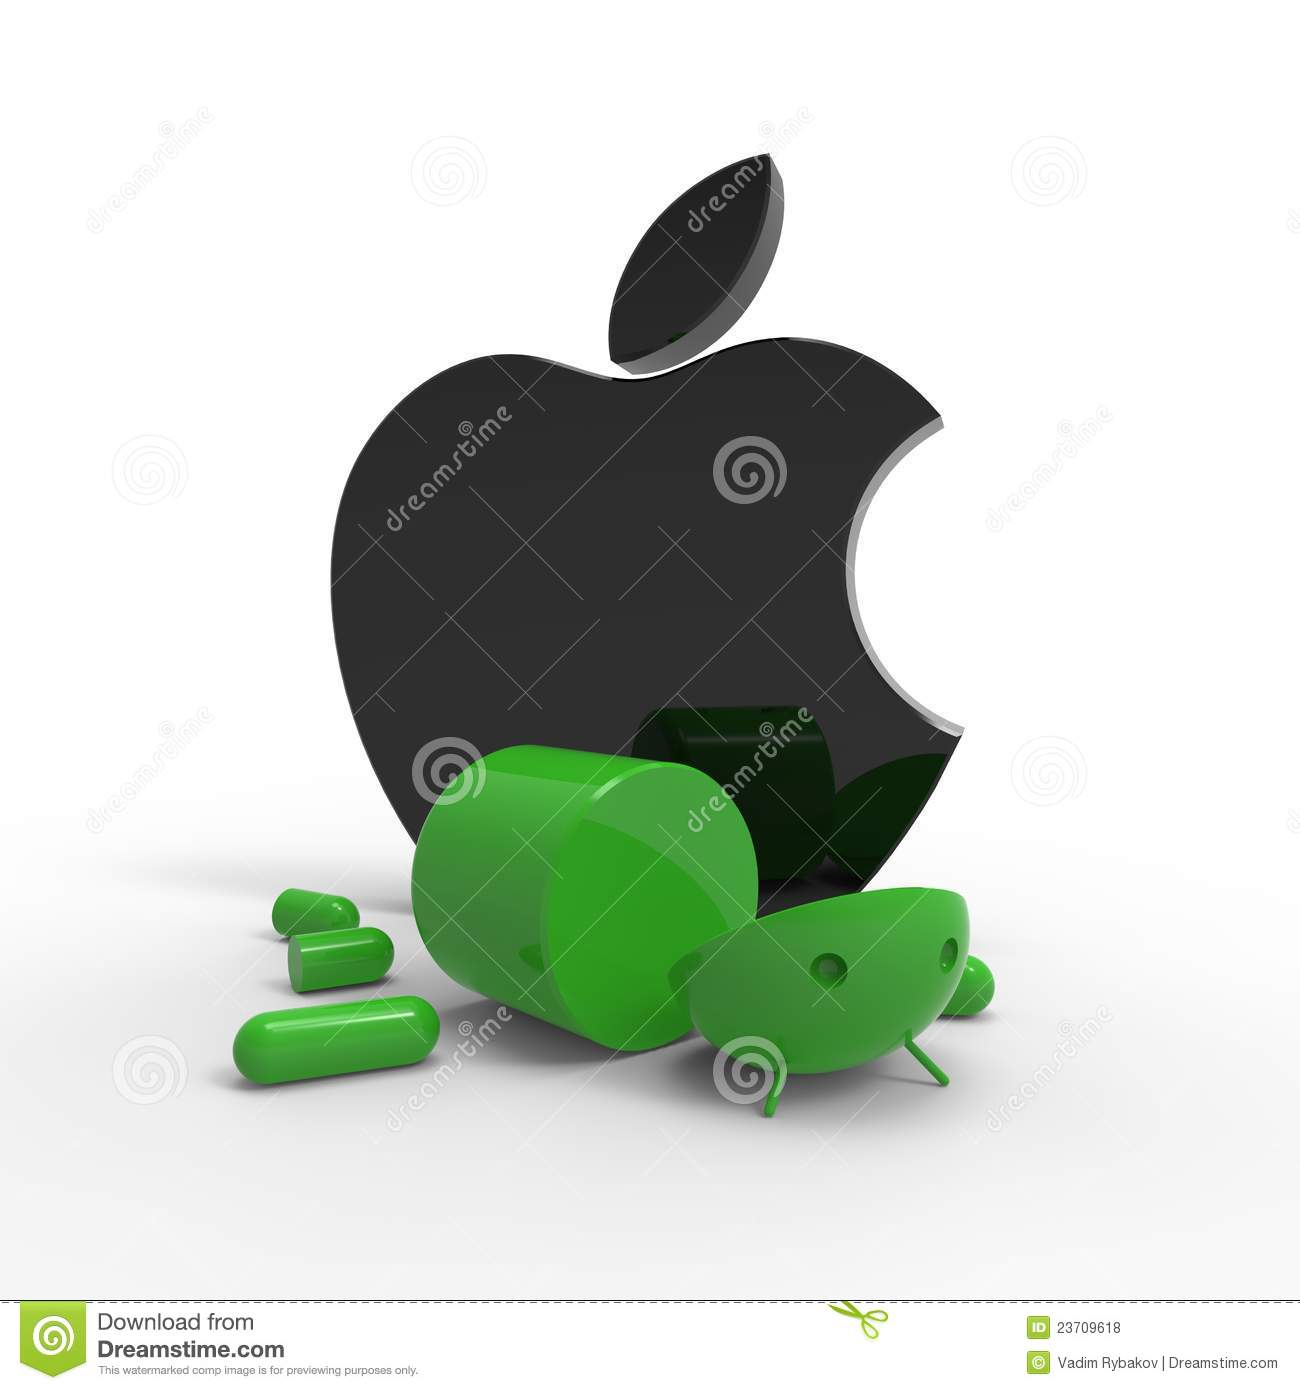 Apple vs android clipart clip transparent Apple vs android clipart - ClipartFest clip transparent